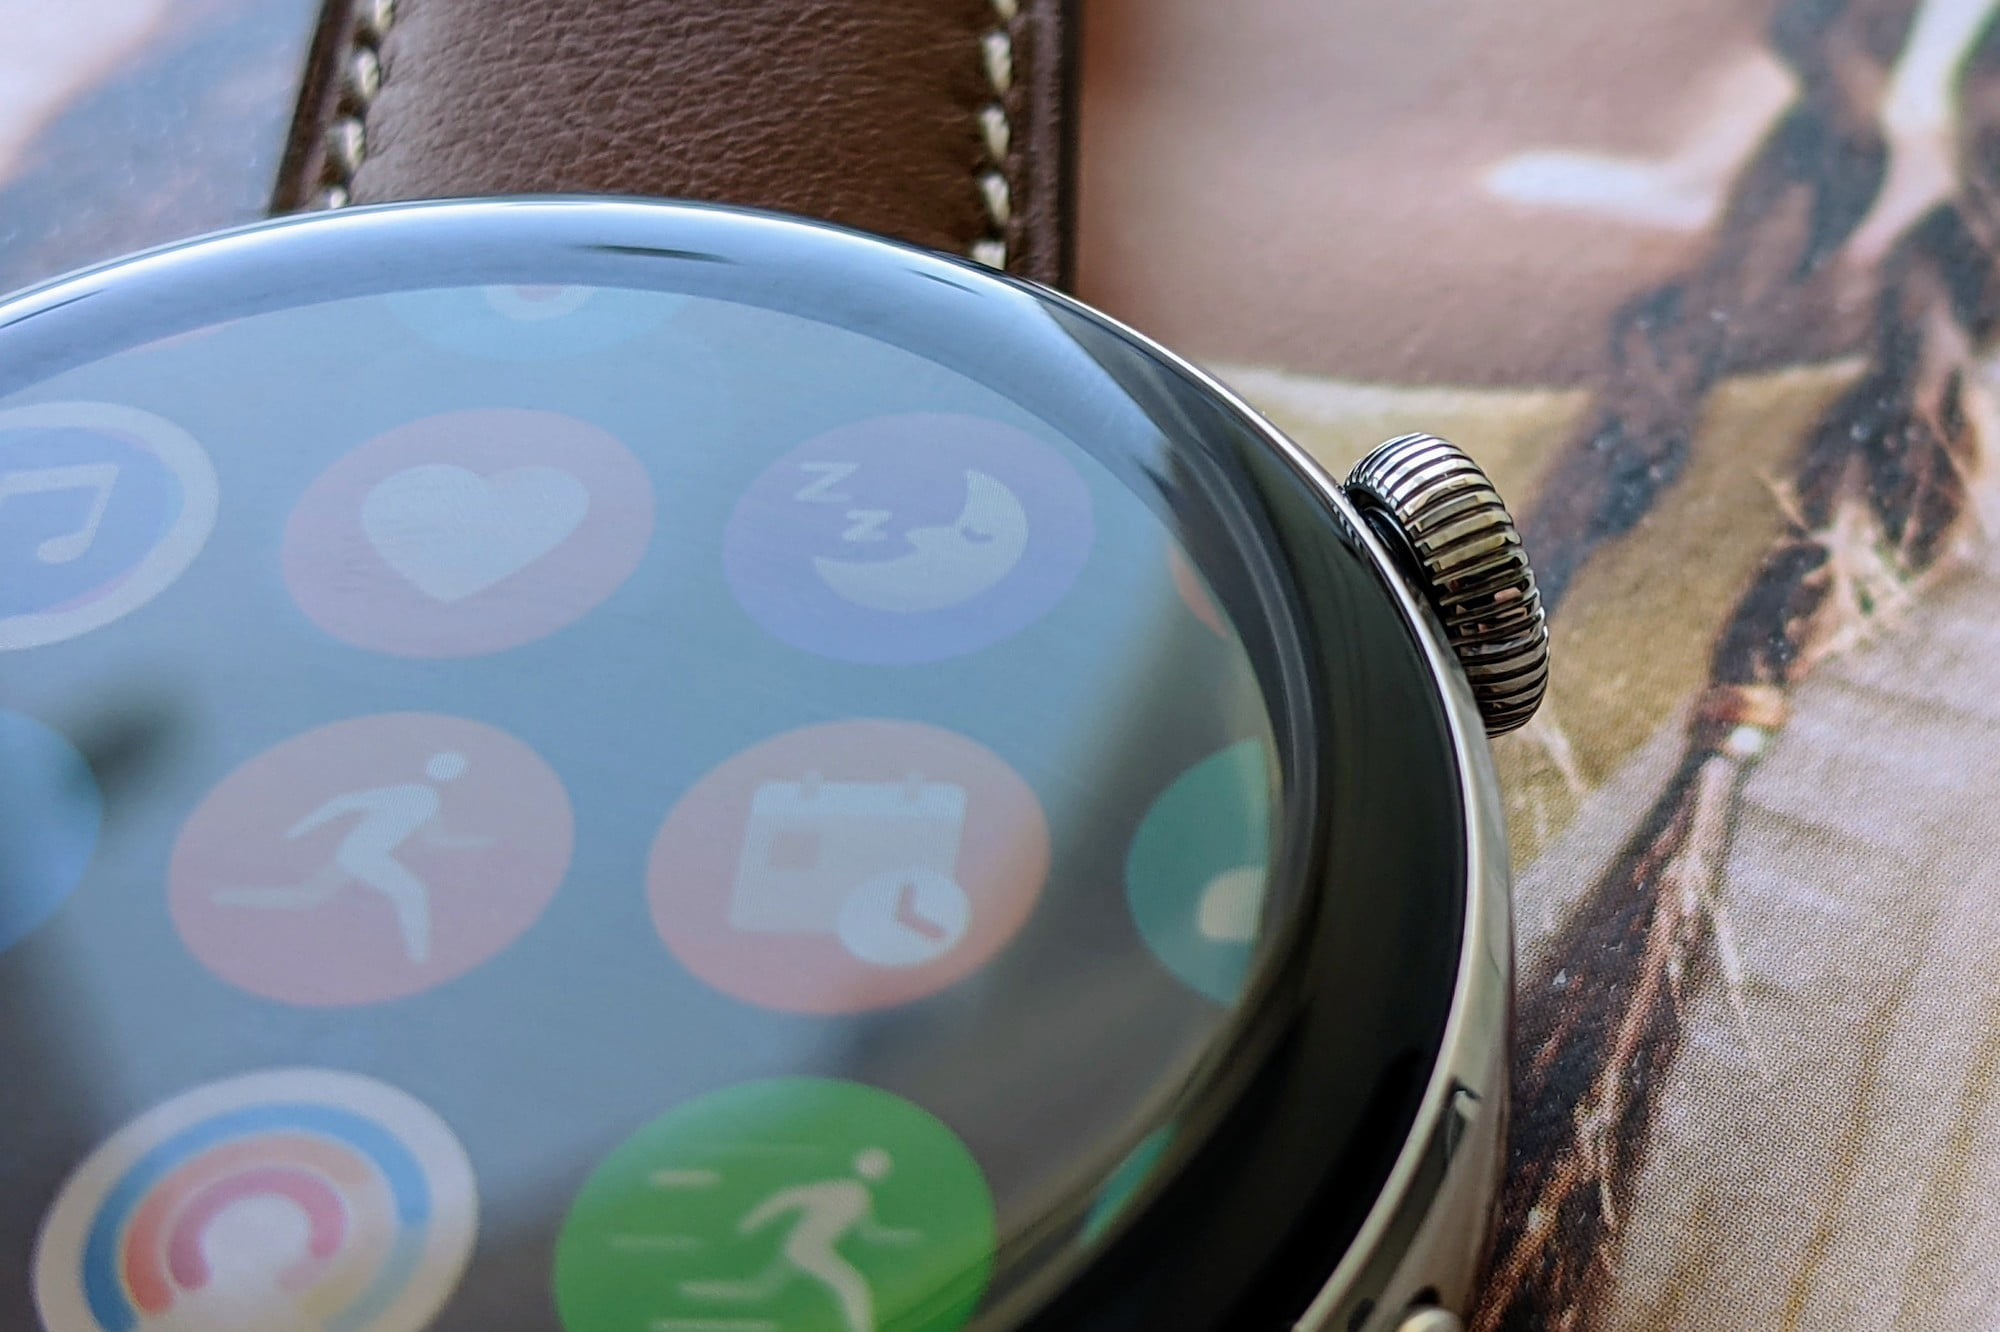 The texture of the Huawei Watch 3's crown